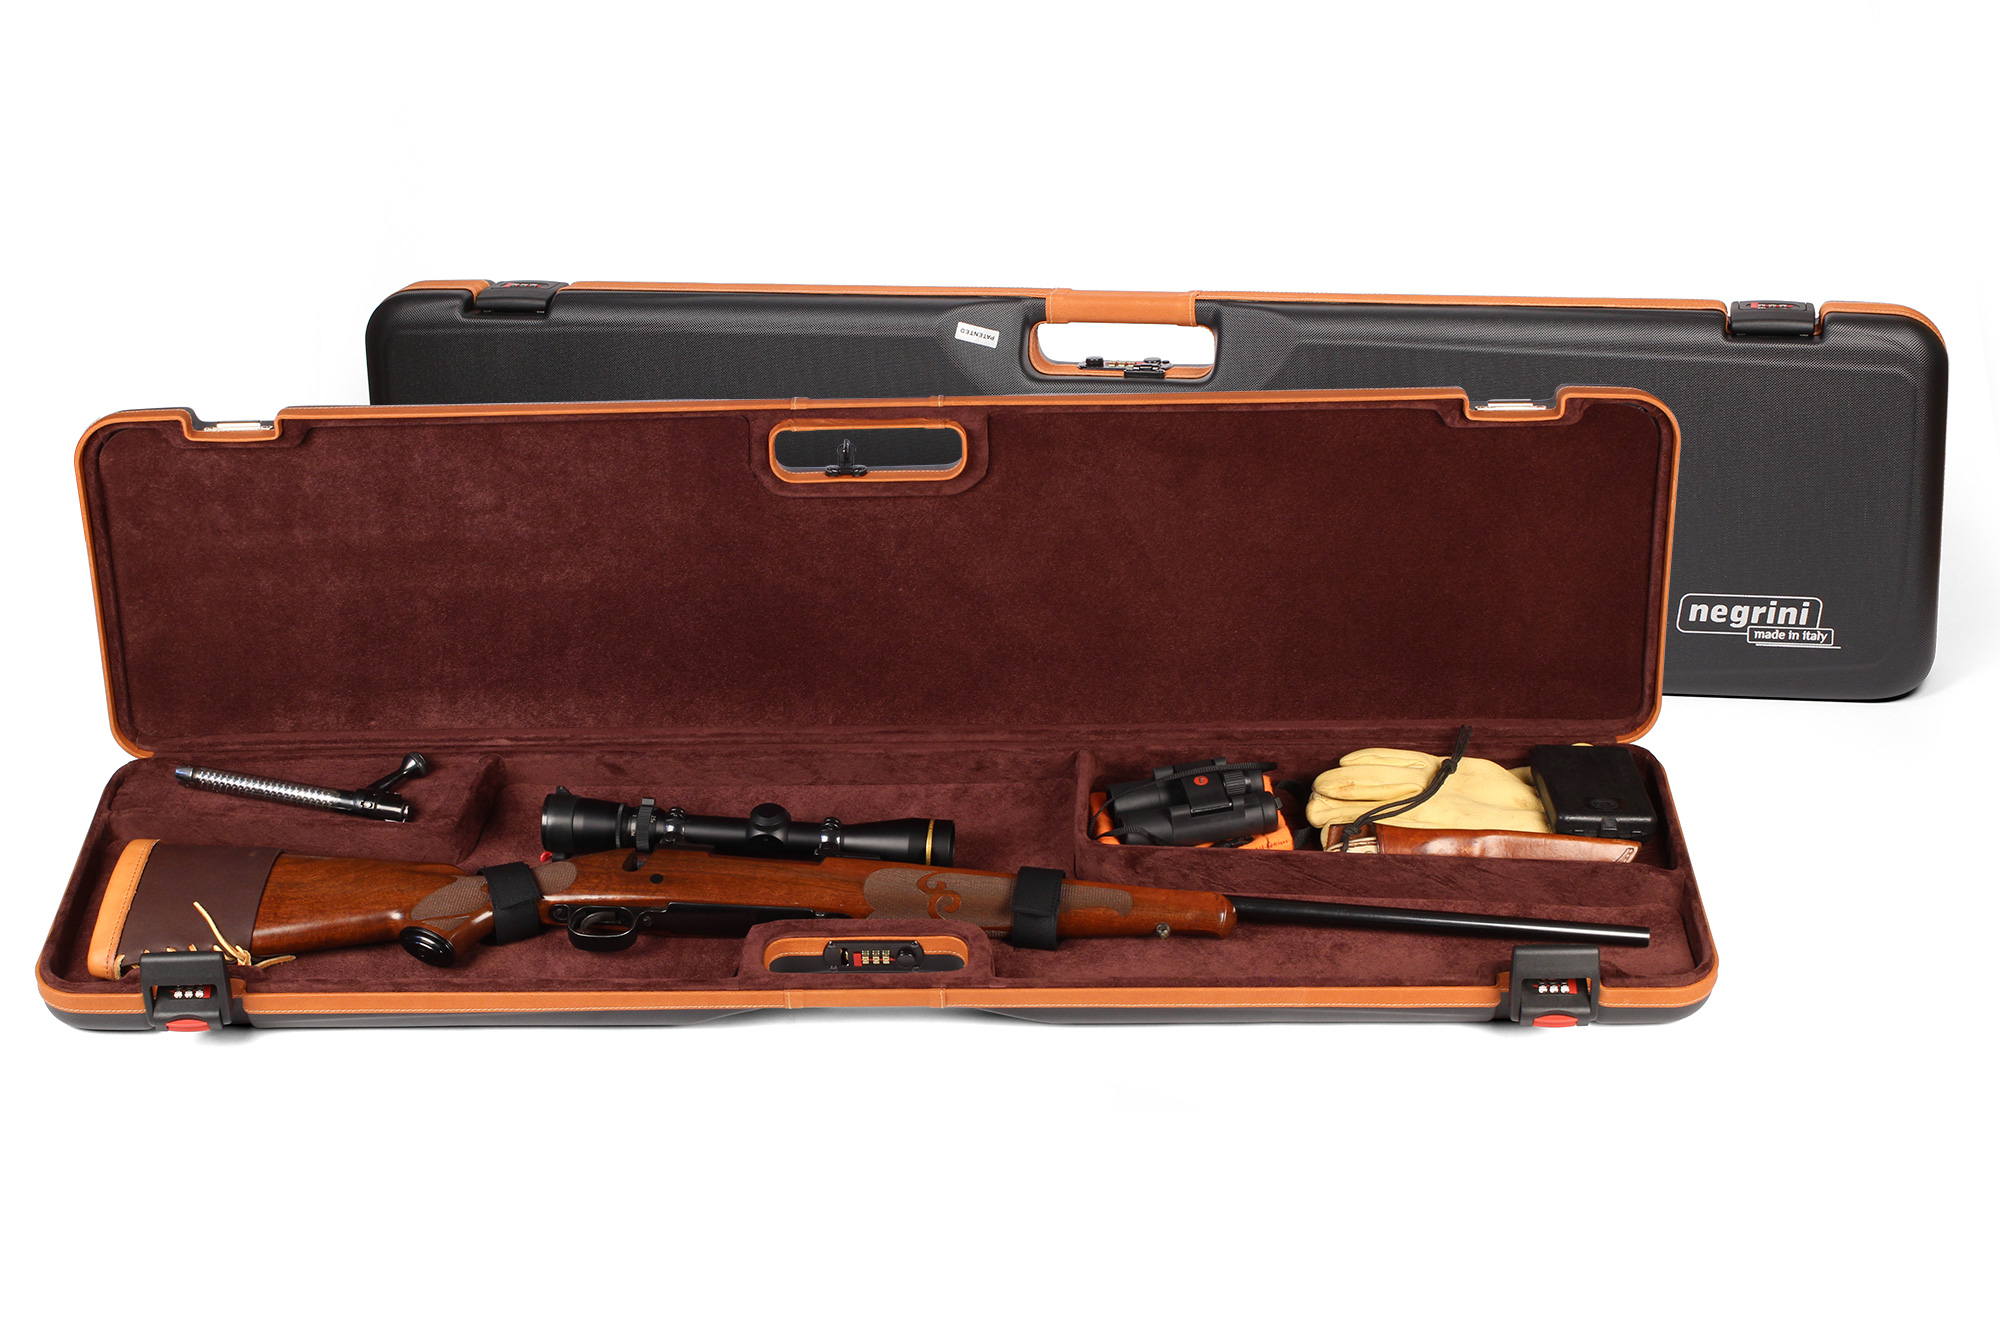 Negrini Deluxe Compact Bolt Action Rifle Case for Travel